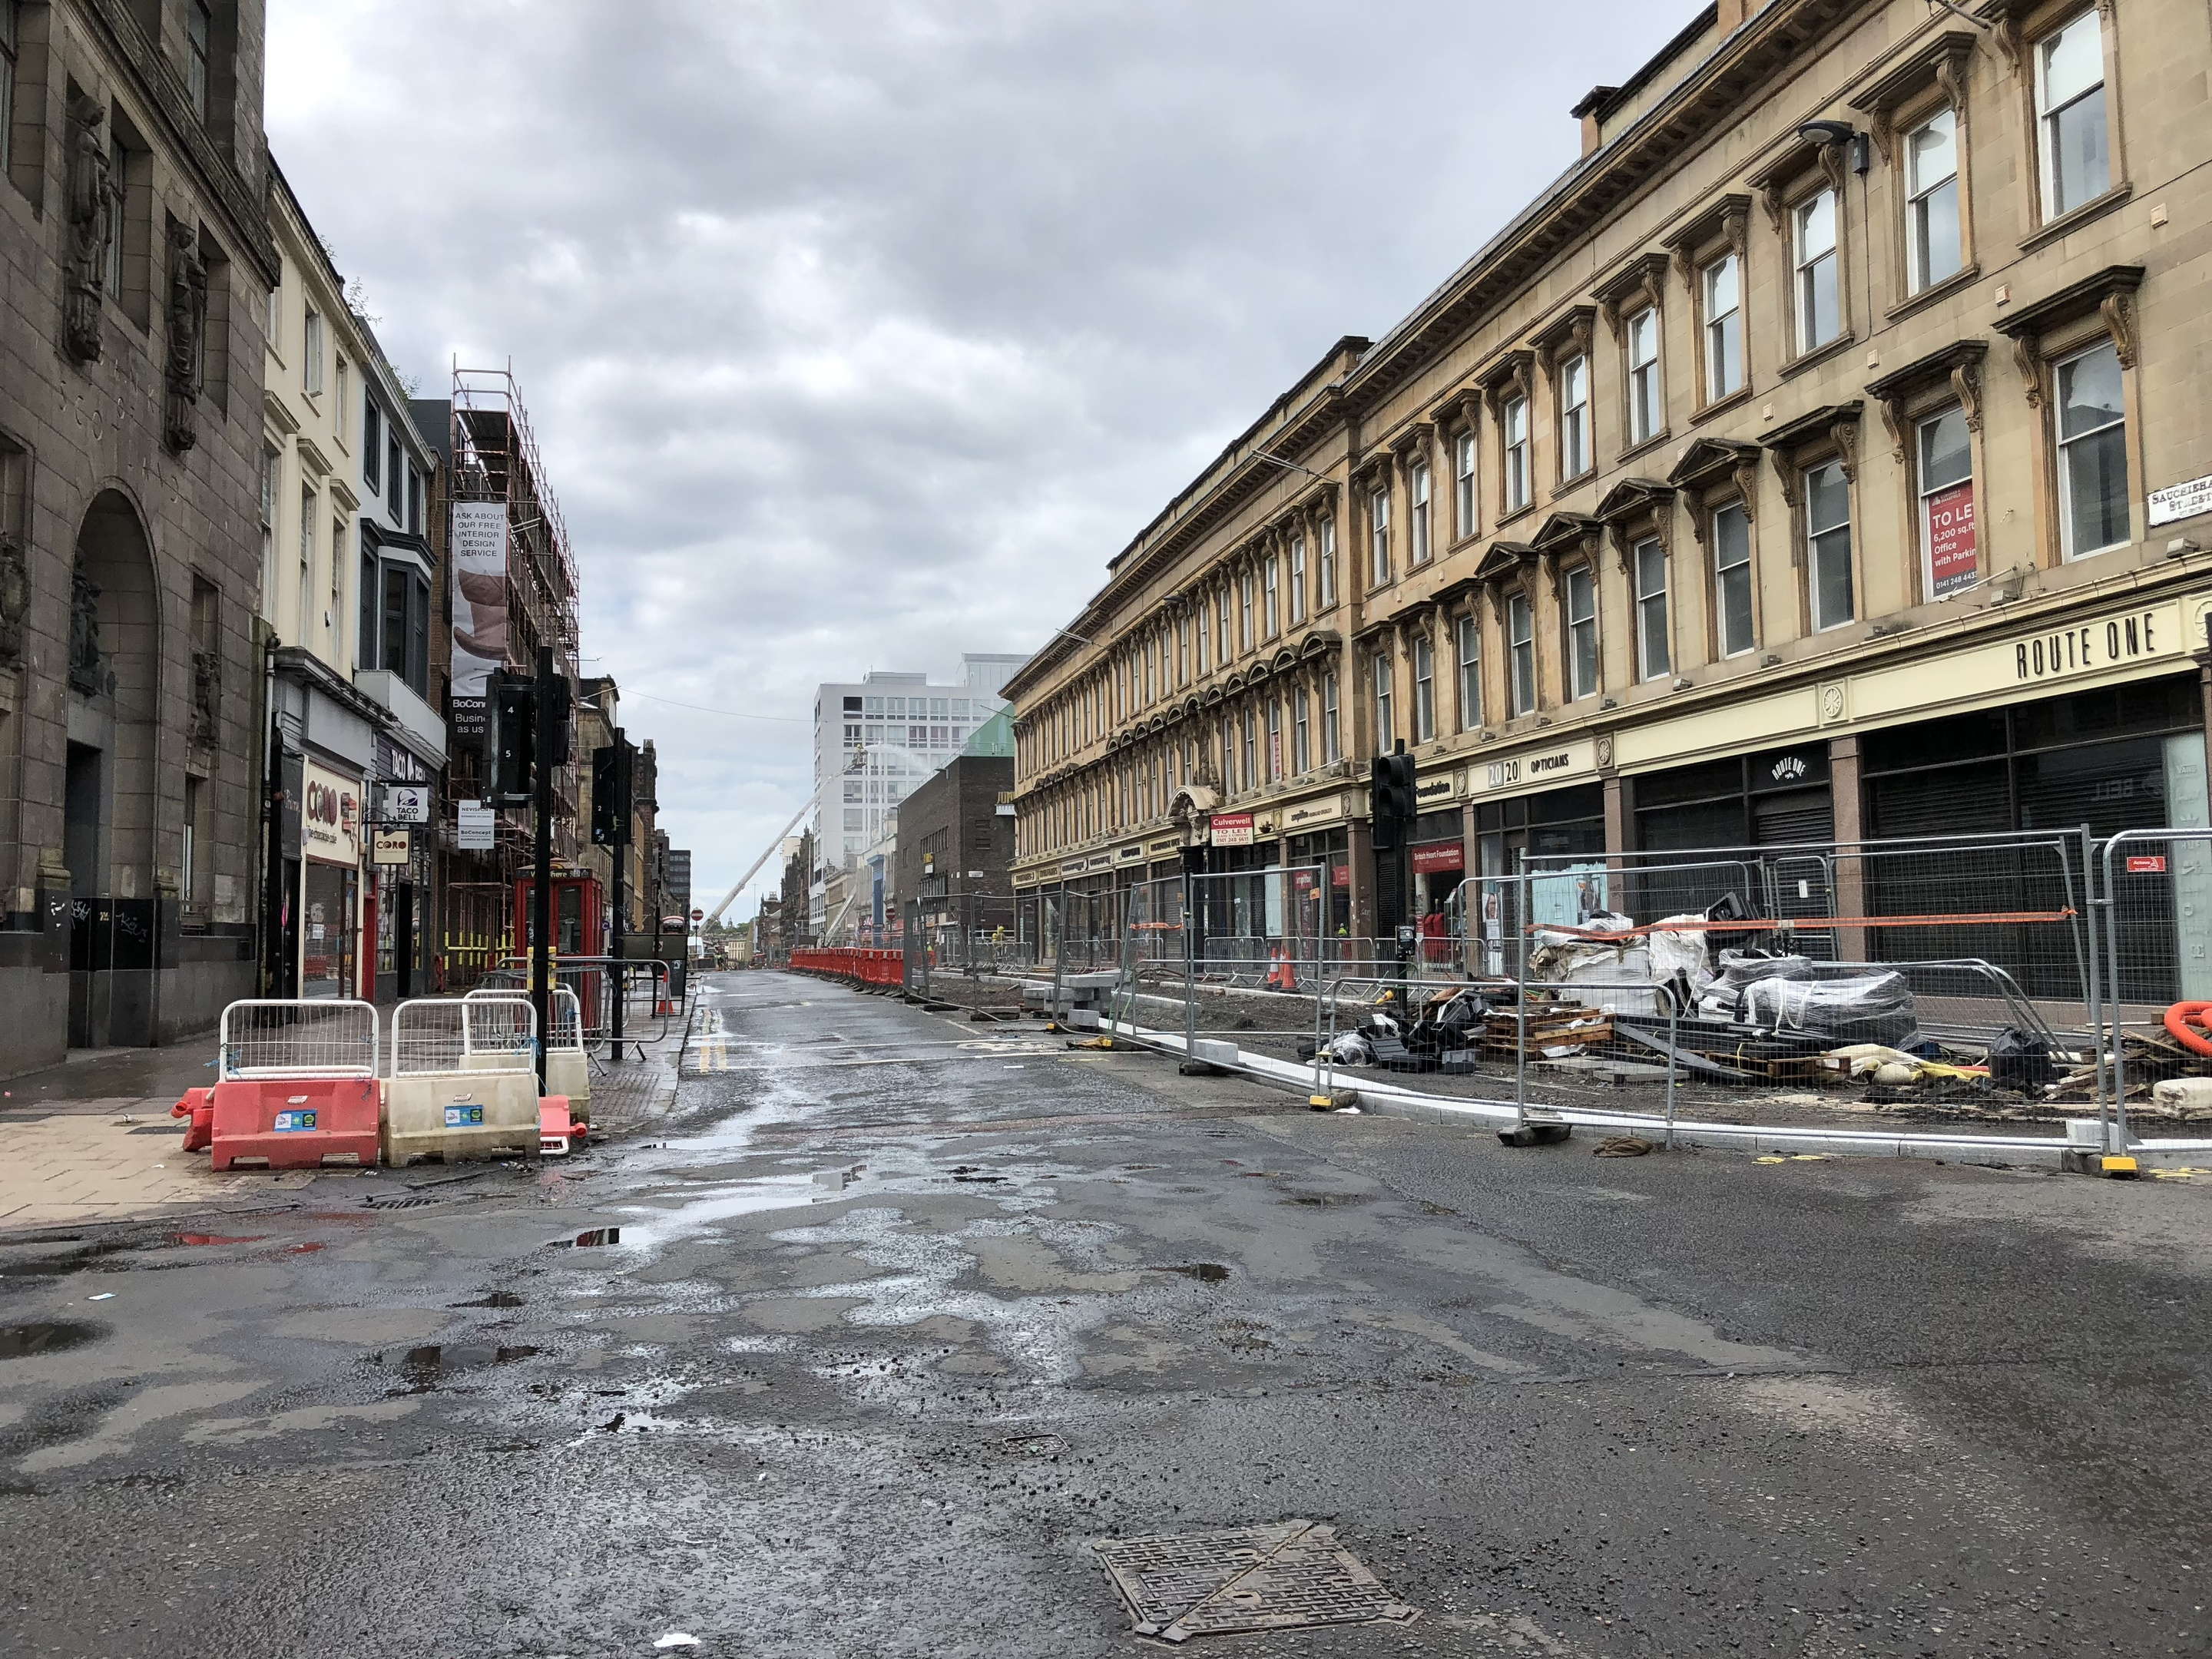 Sauchiehall Street in the aftermath of the fire (Ross Crae / DC Thomson)